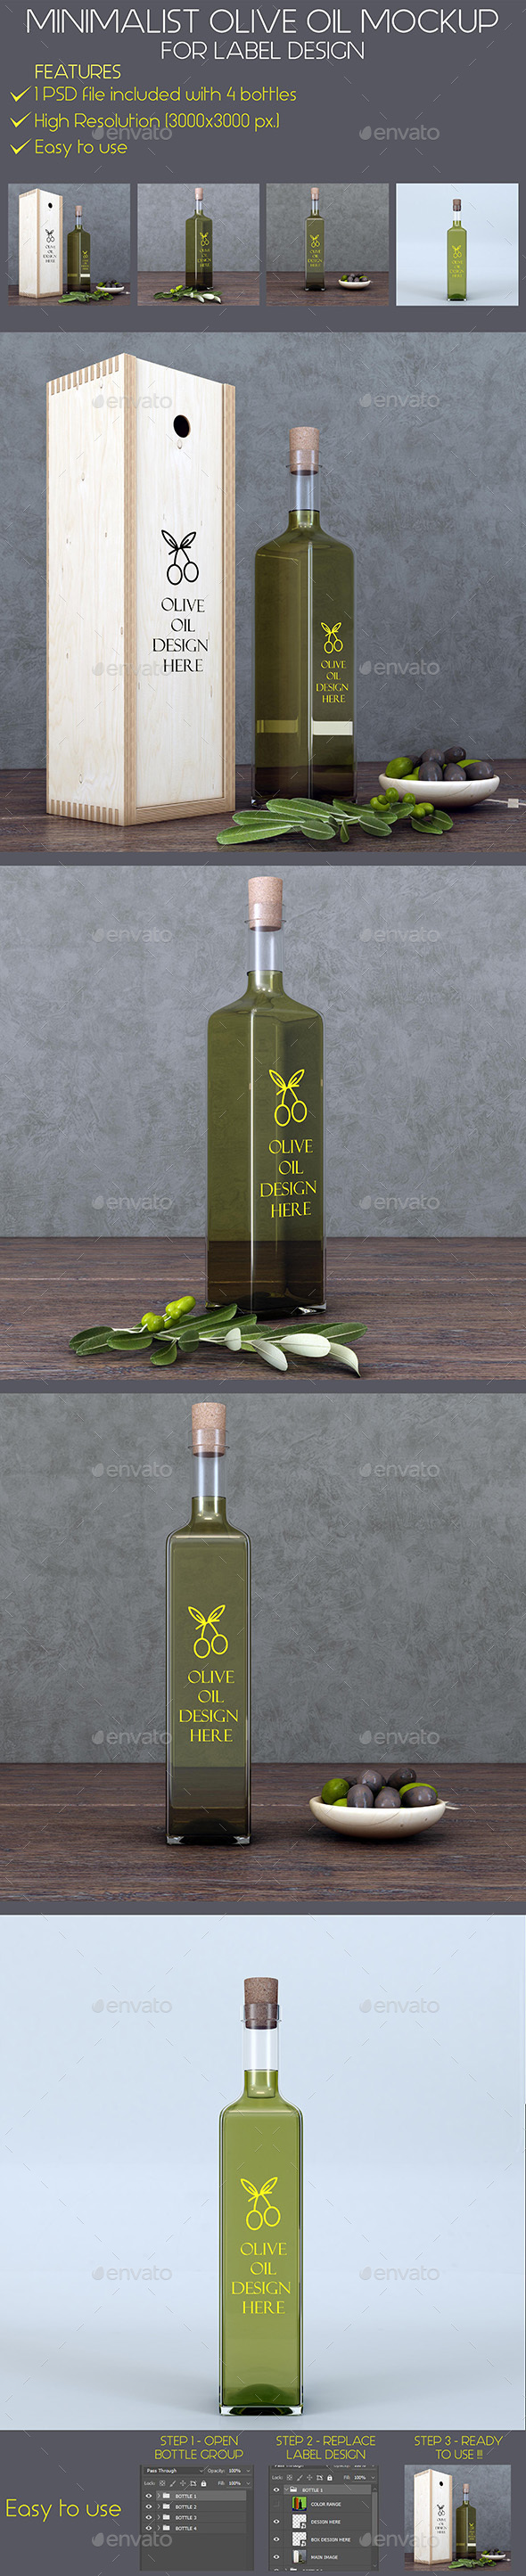 Minimalist Olive Oil Mockup - Food and Drink Packaging